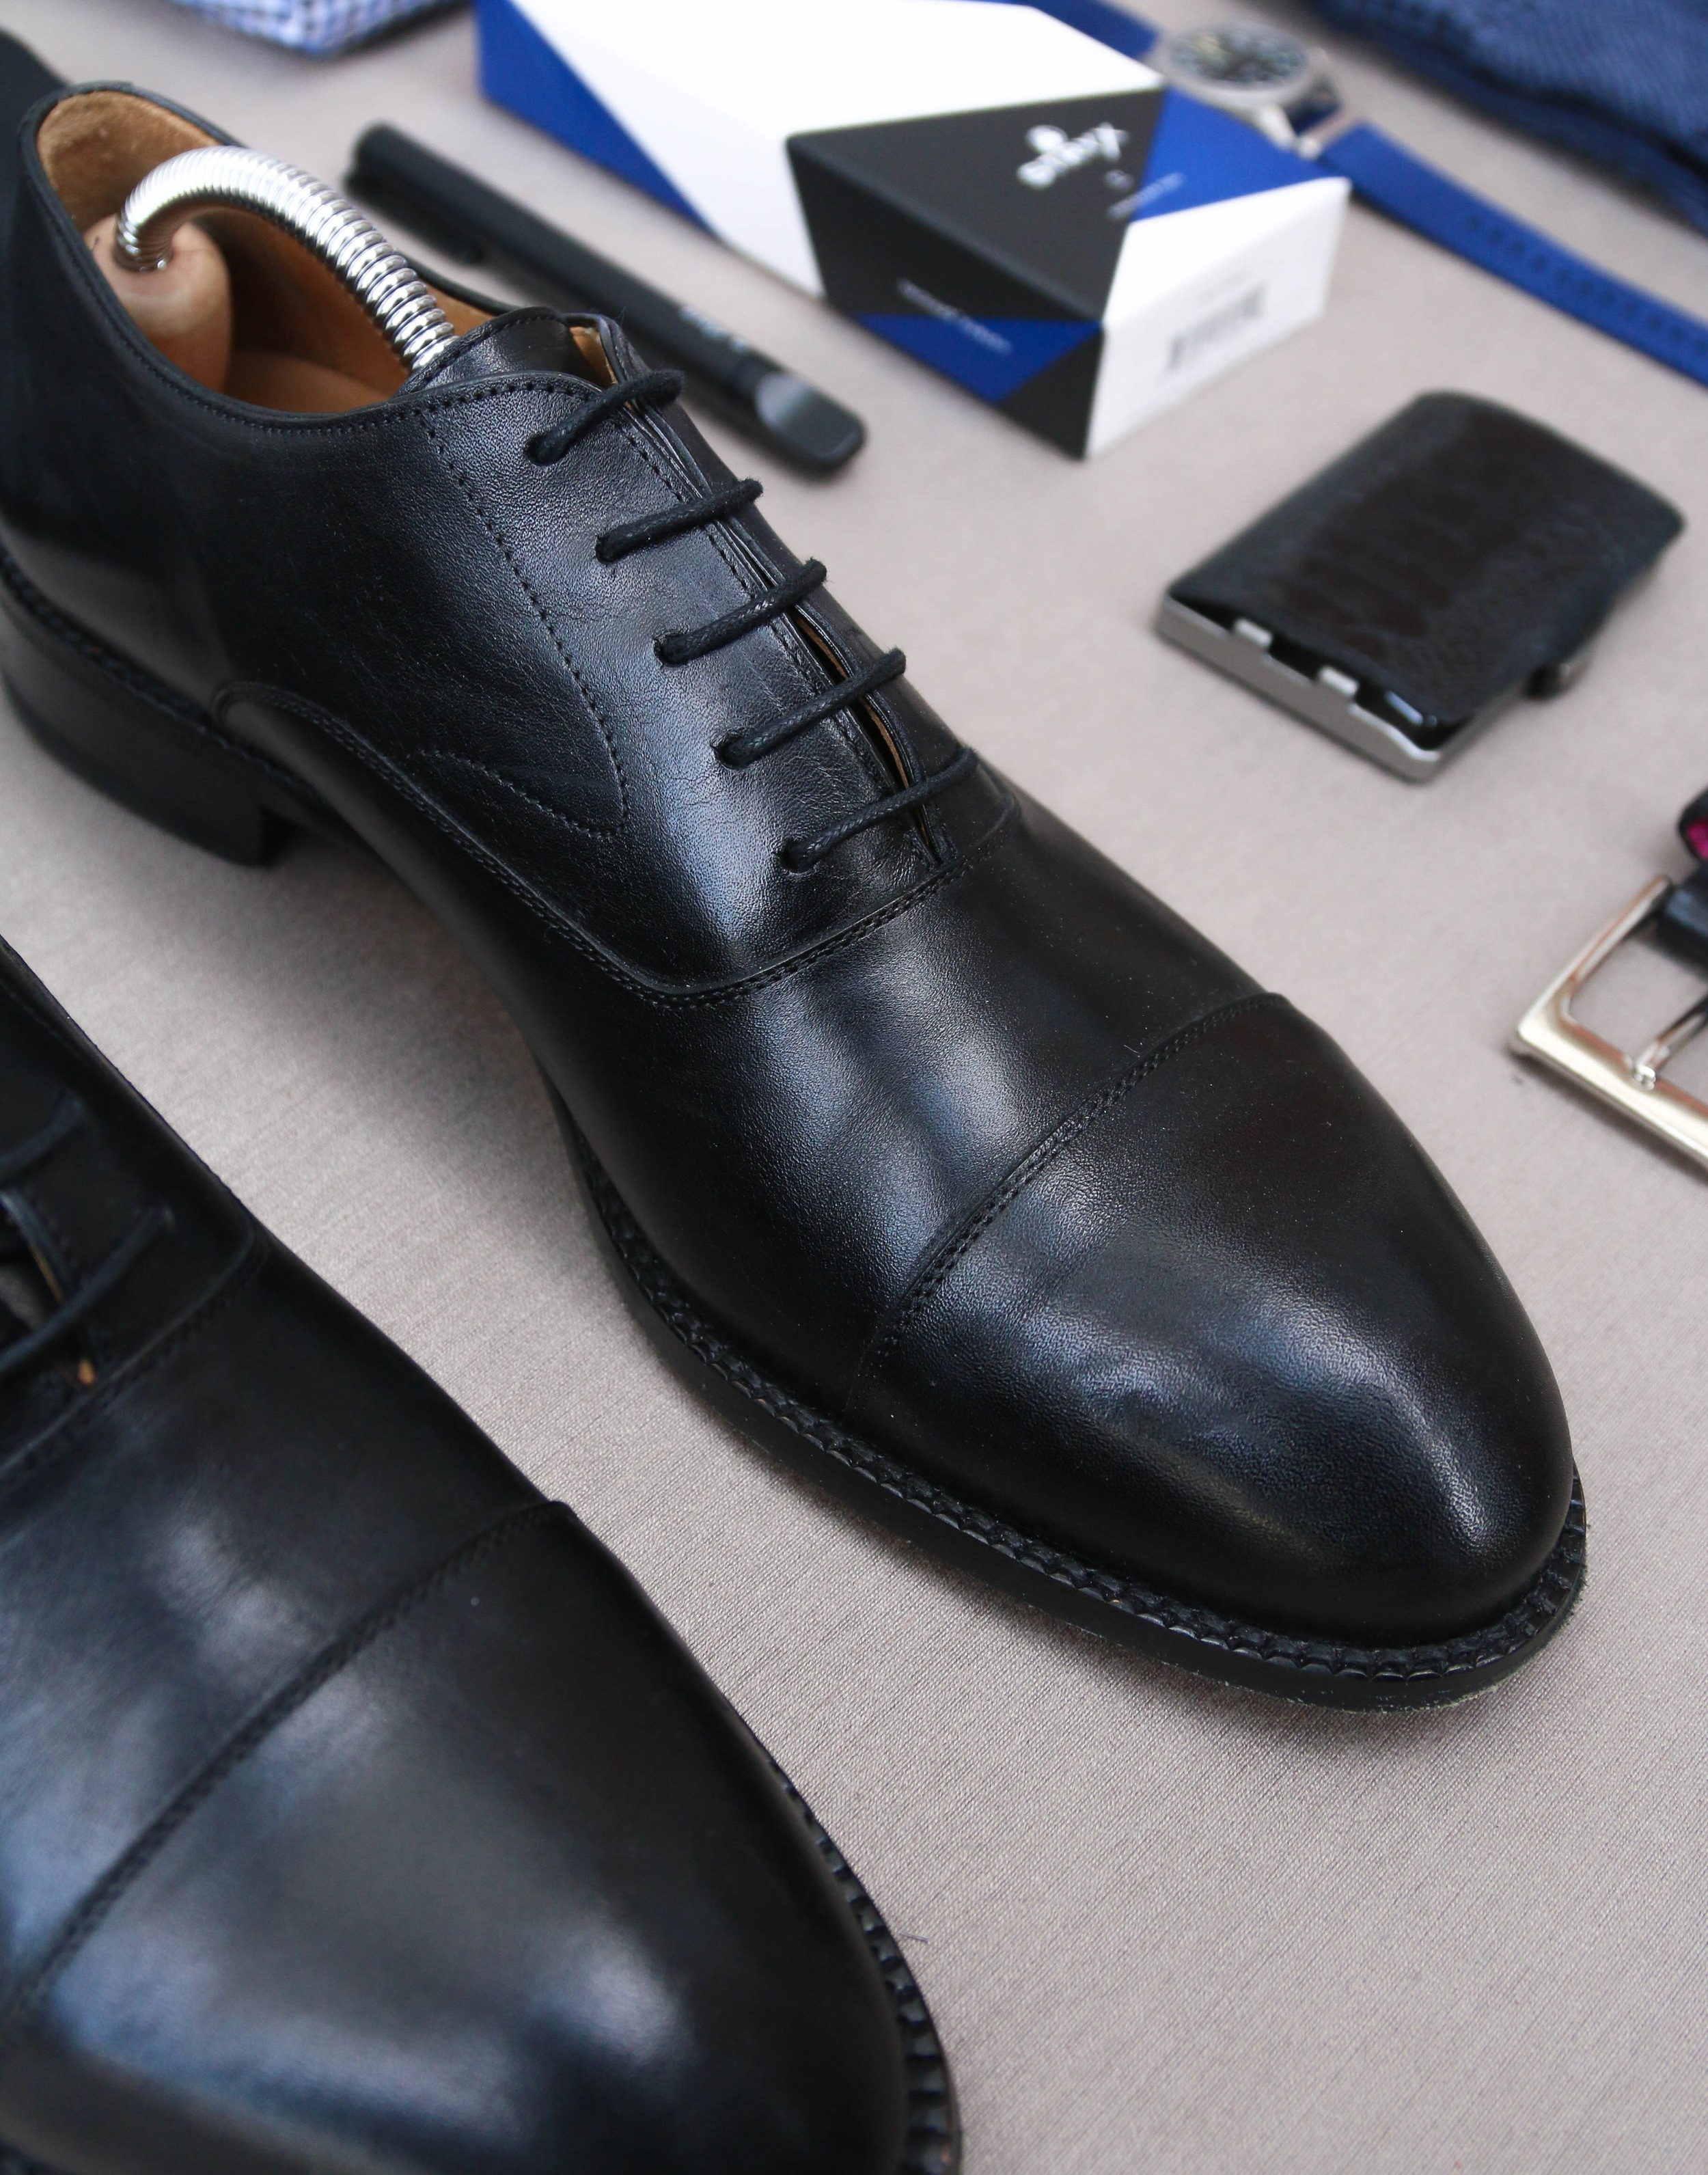 You can see that sleek, curvy design of the dean oxford. The shoes have a timeless look and fit like a glove